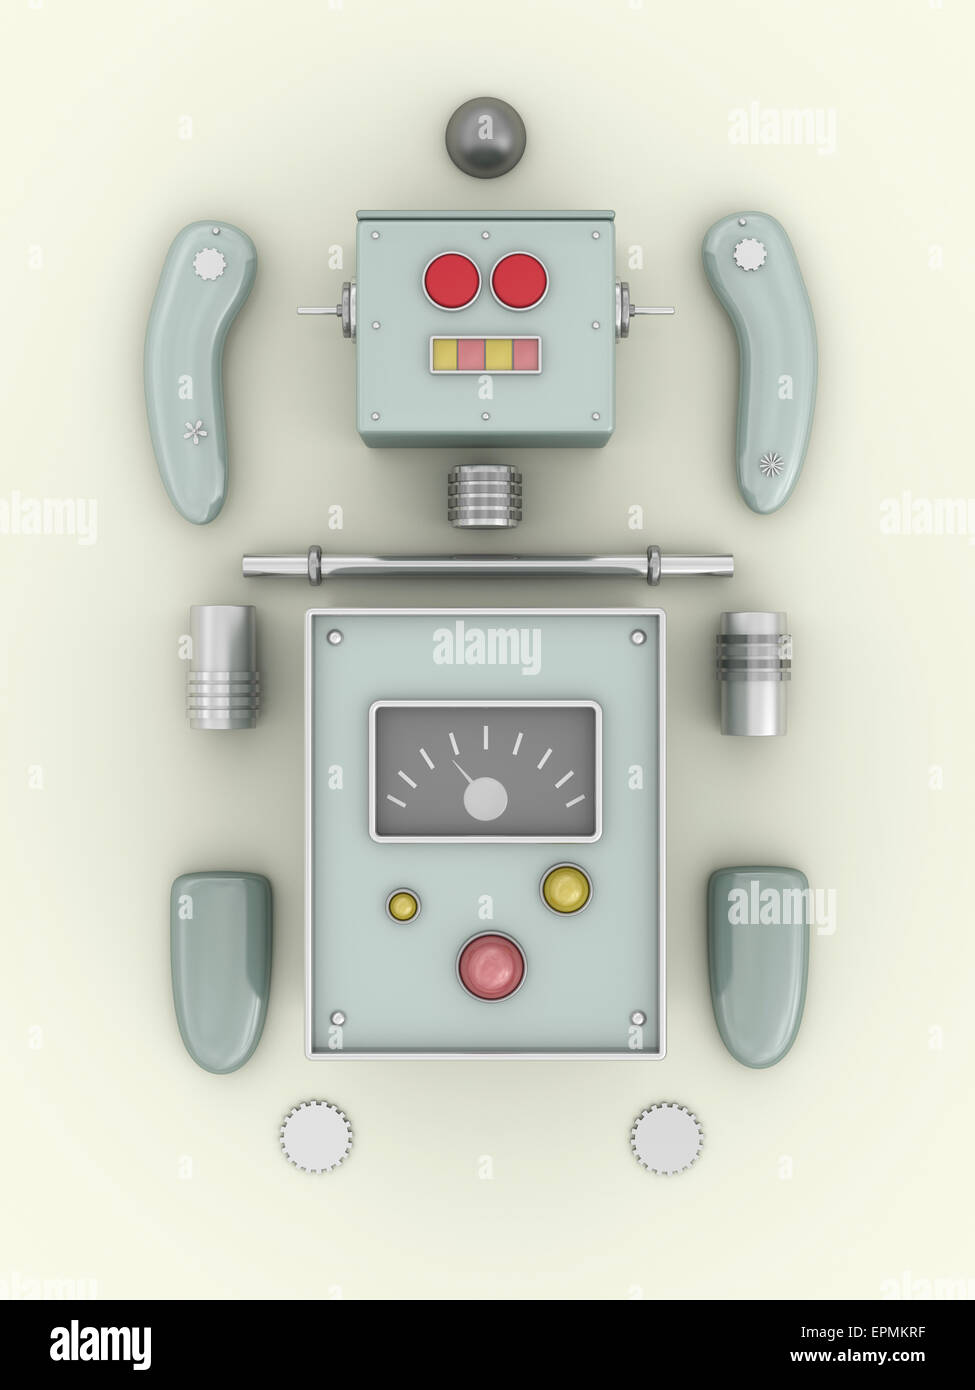 Construction kit of a robot, 3D rendering - Stock Image